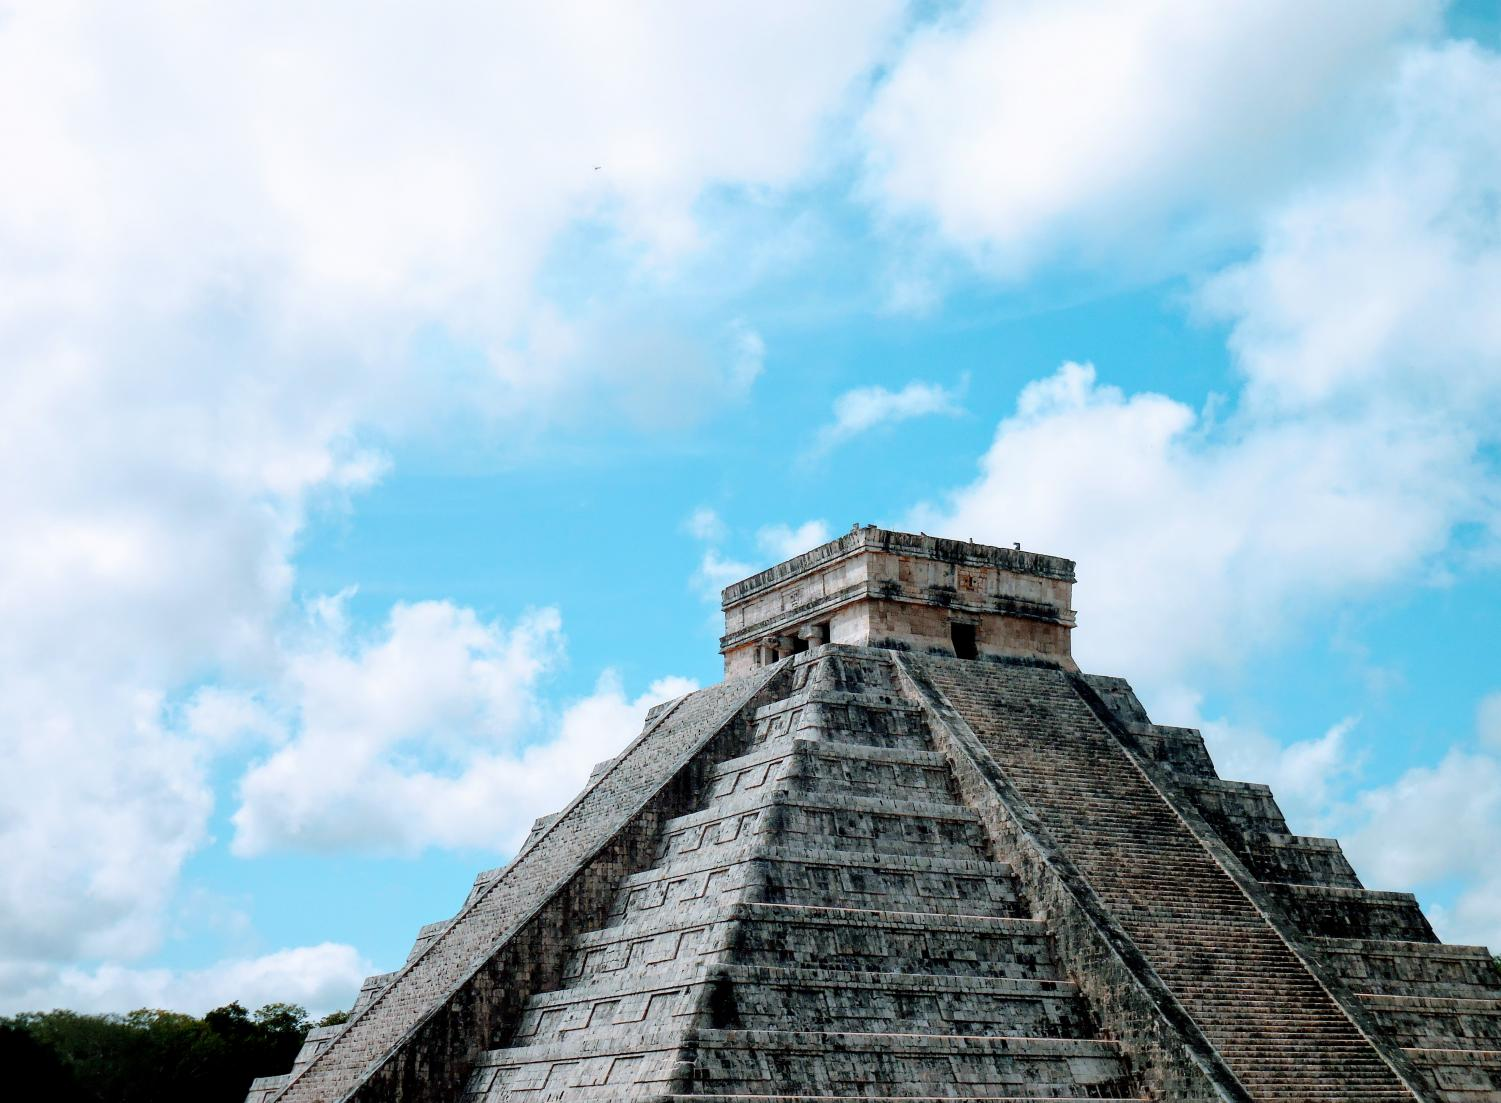 A pyrimad in Mexico called El Castillo. SHS students visited Mexico with the IU honors program.